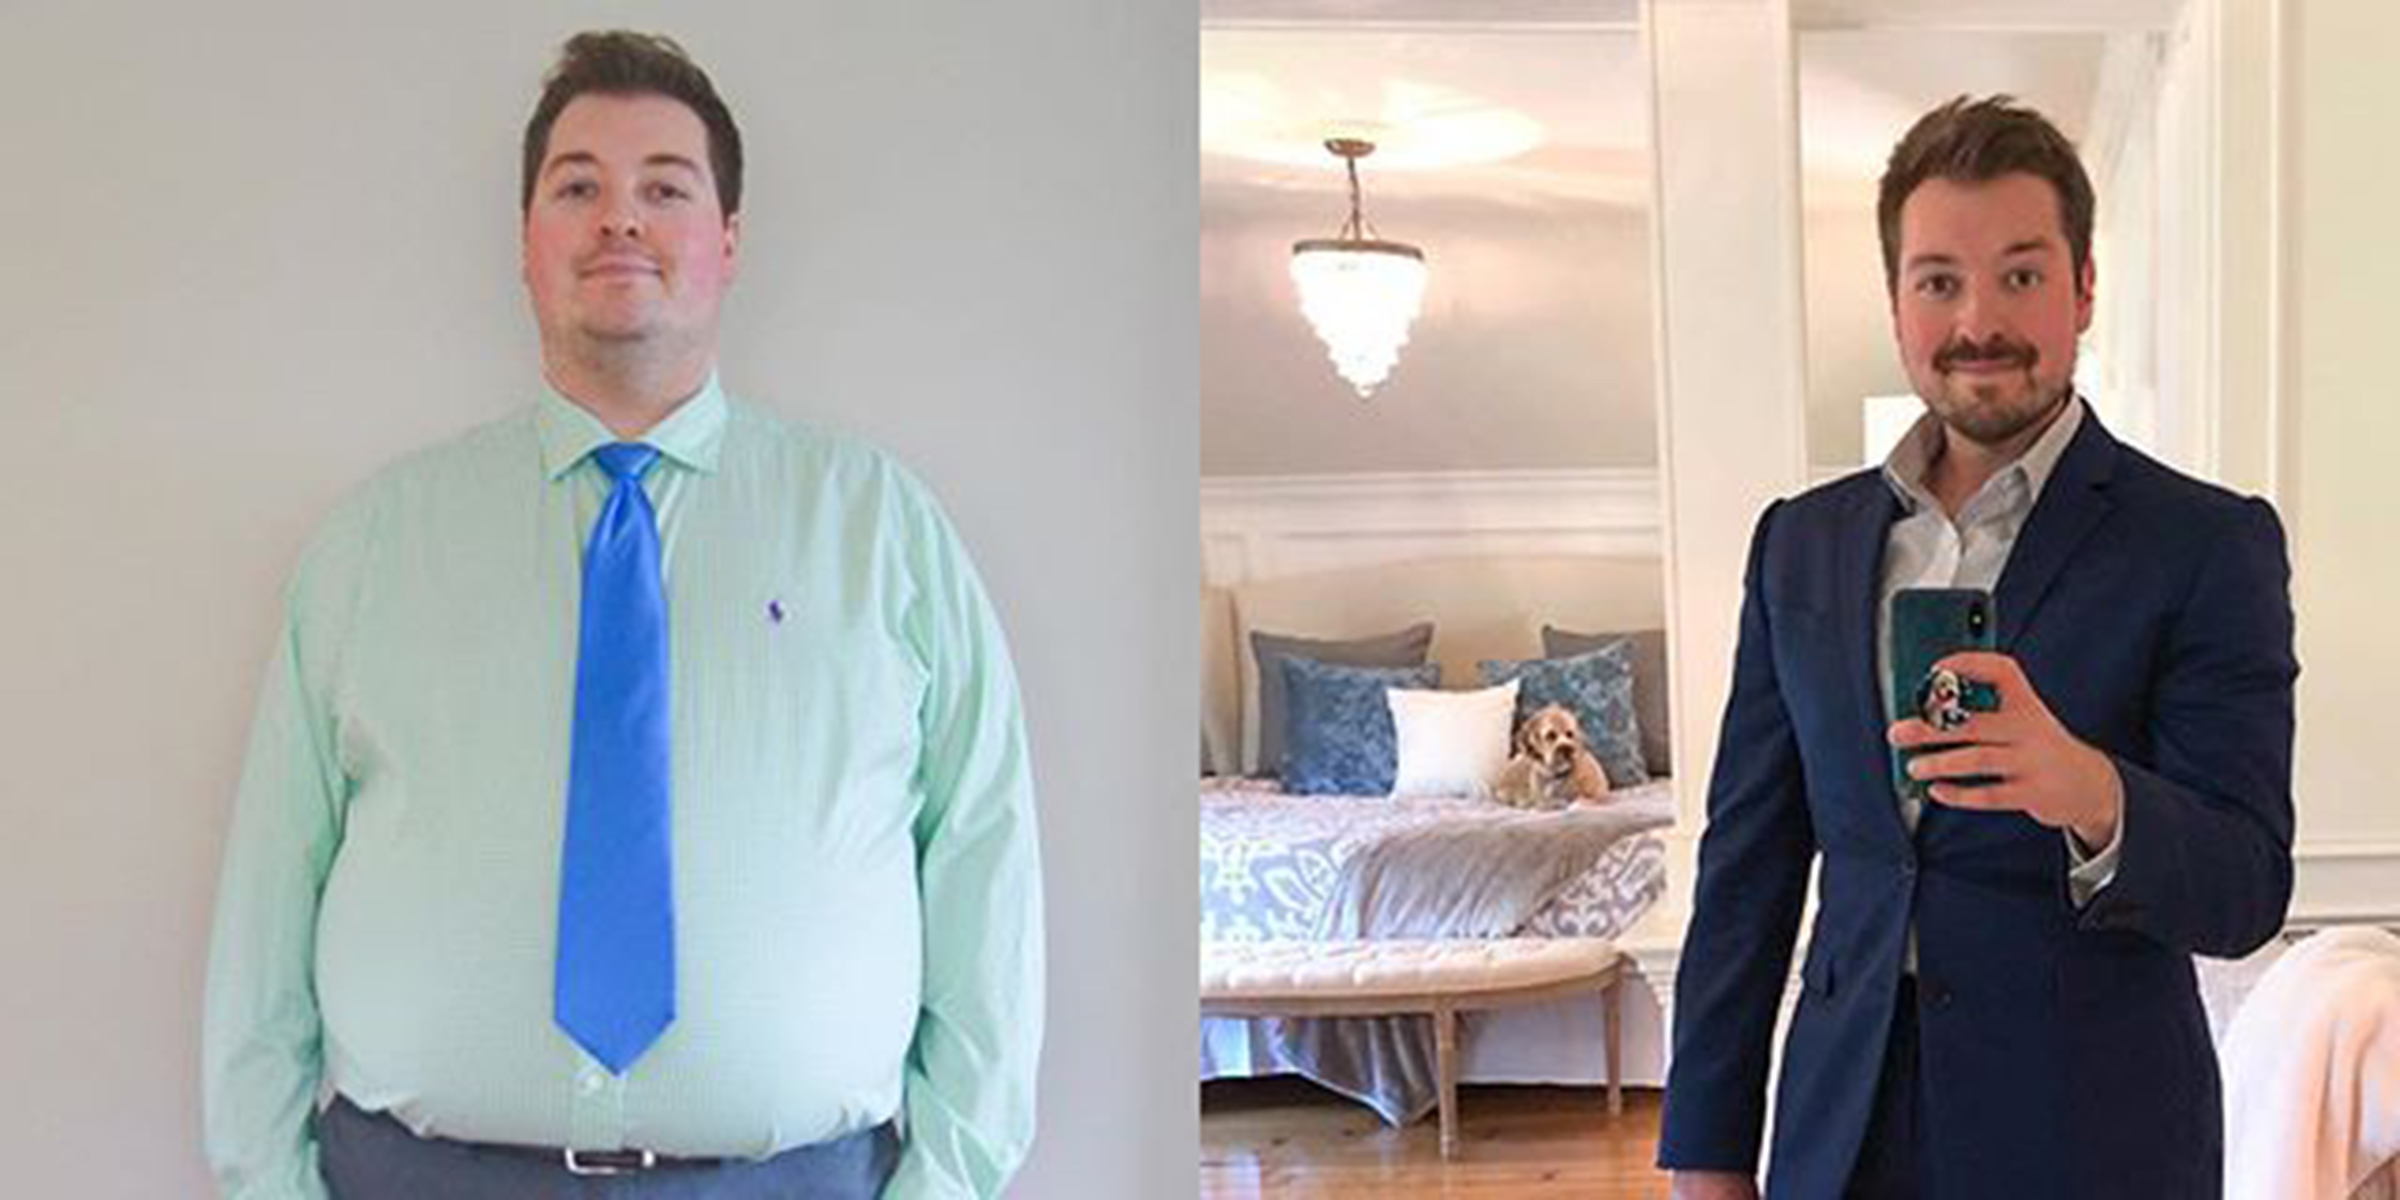 Doctor loses 125 pounds by intermittent fasting: How I keep it off